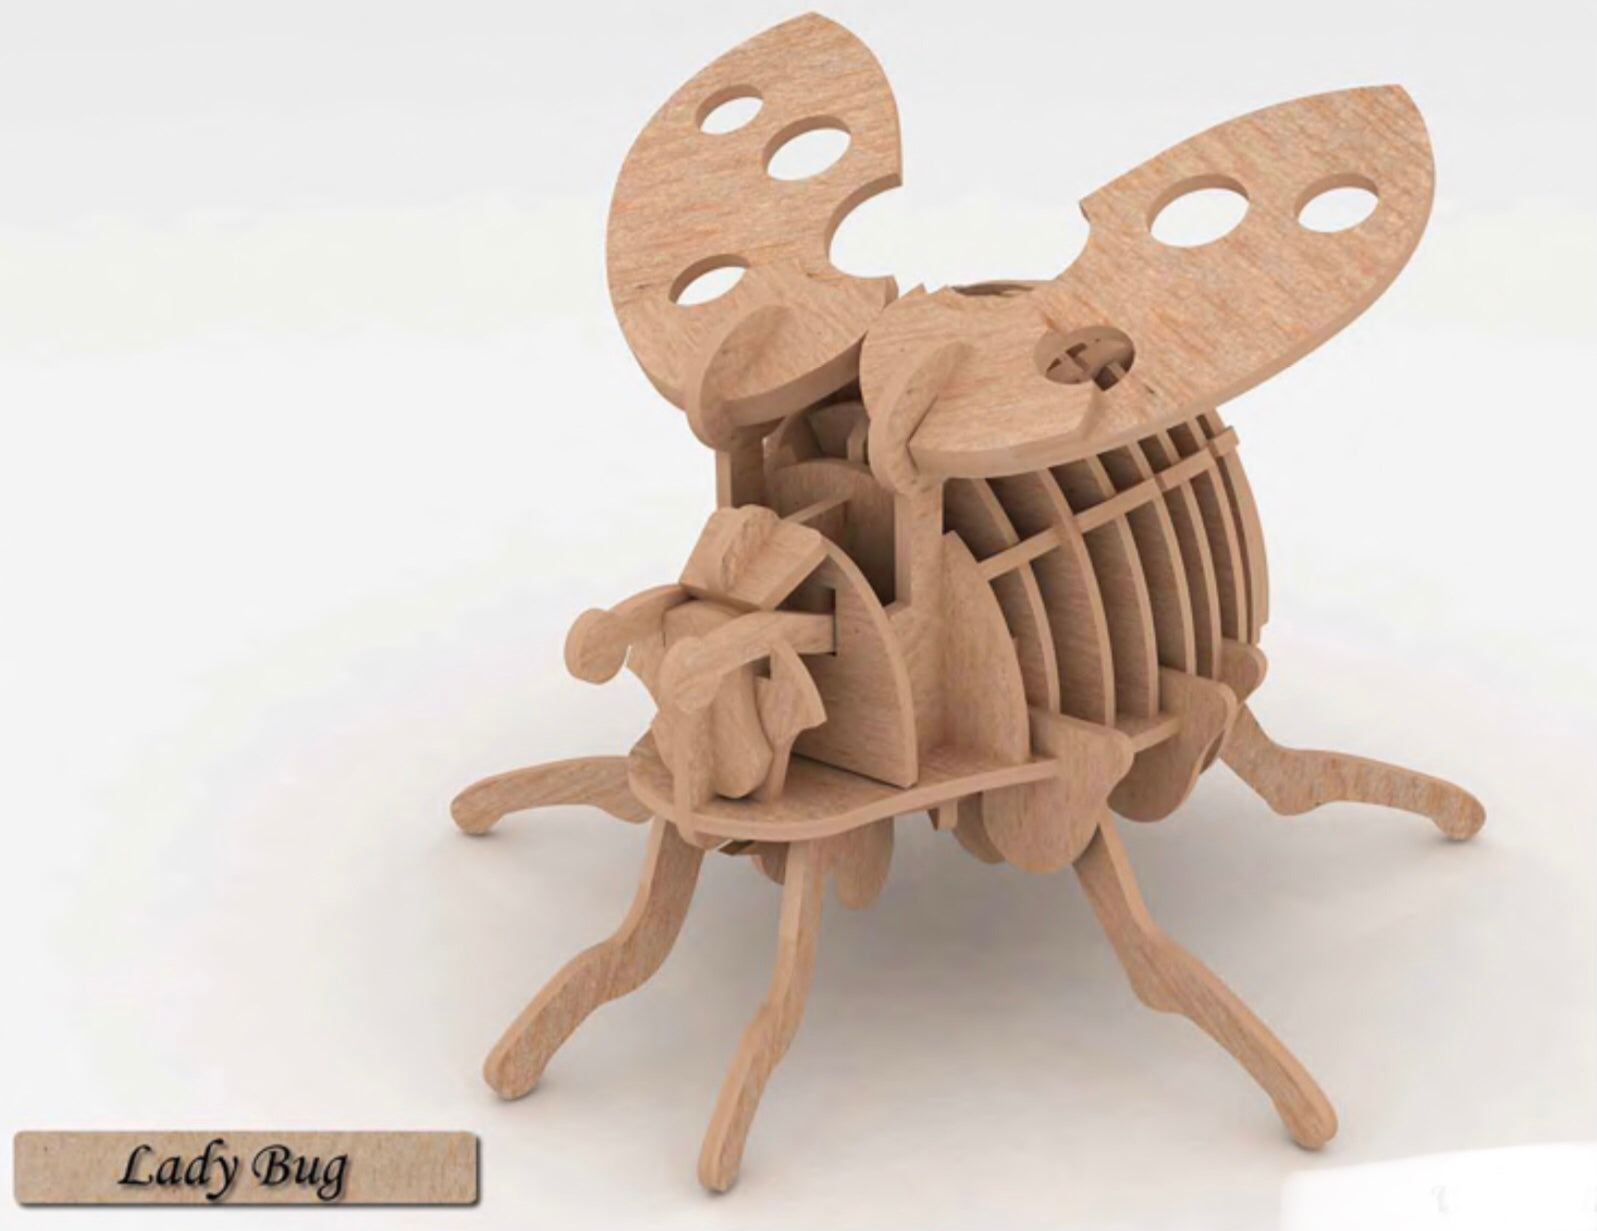 3D Puzzle- Insect Collection: Lady Bug